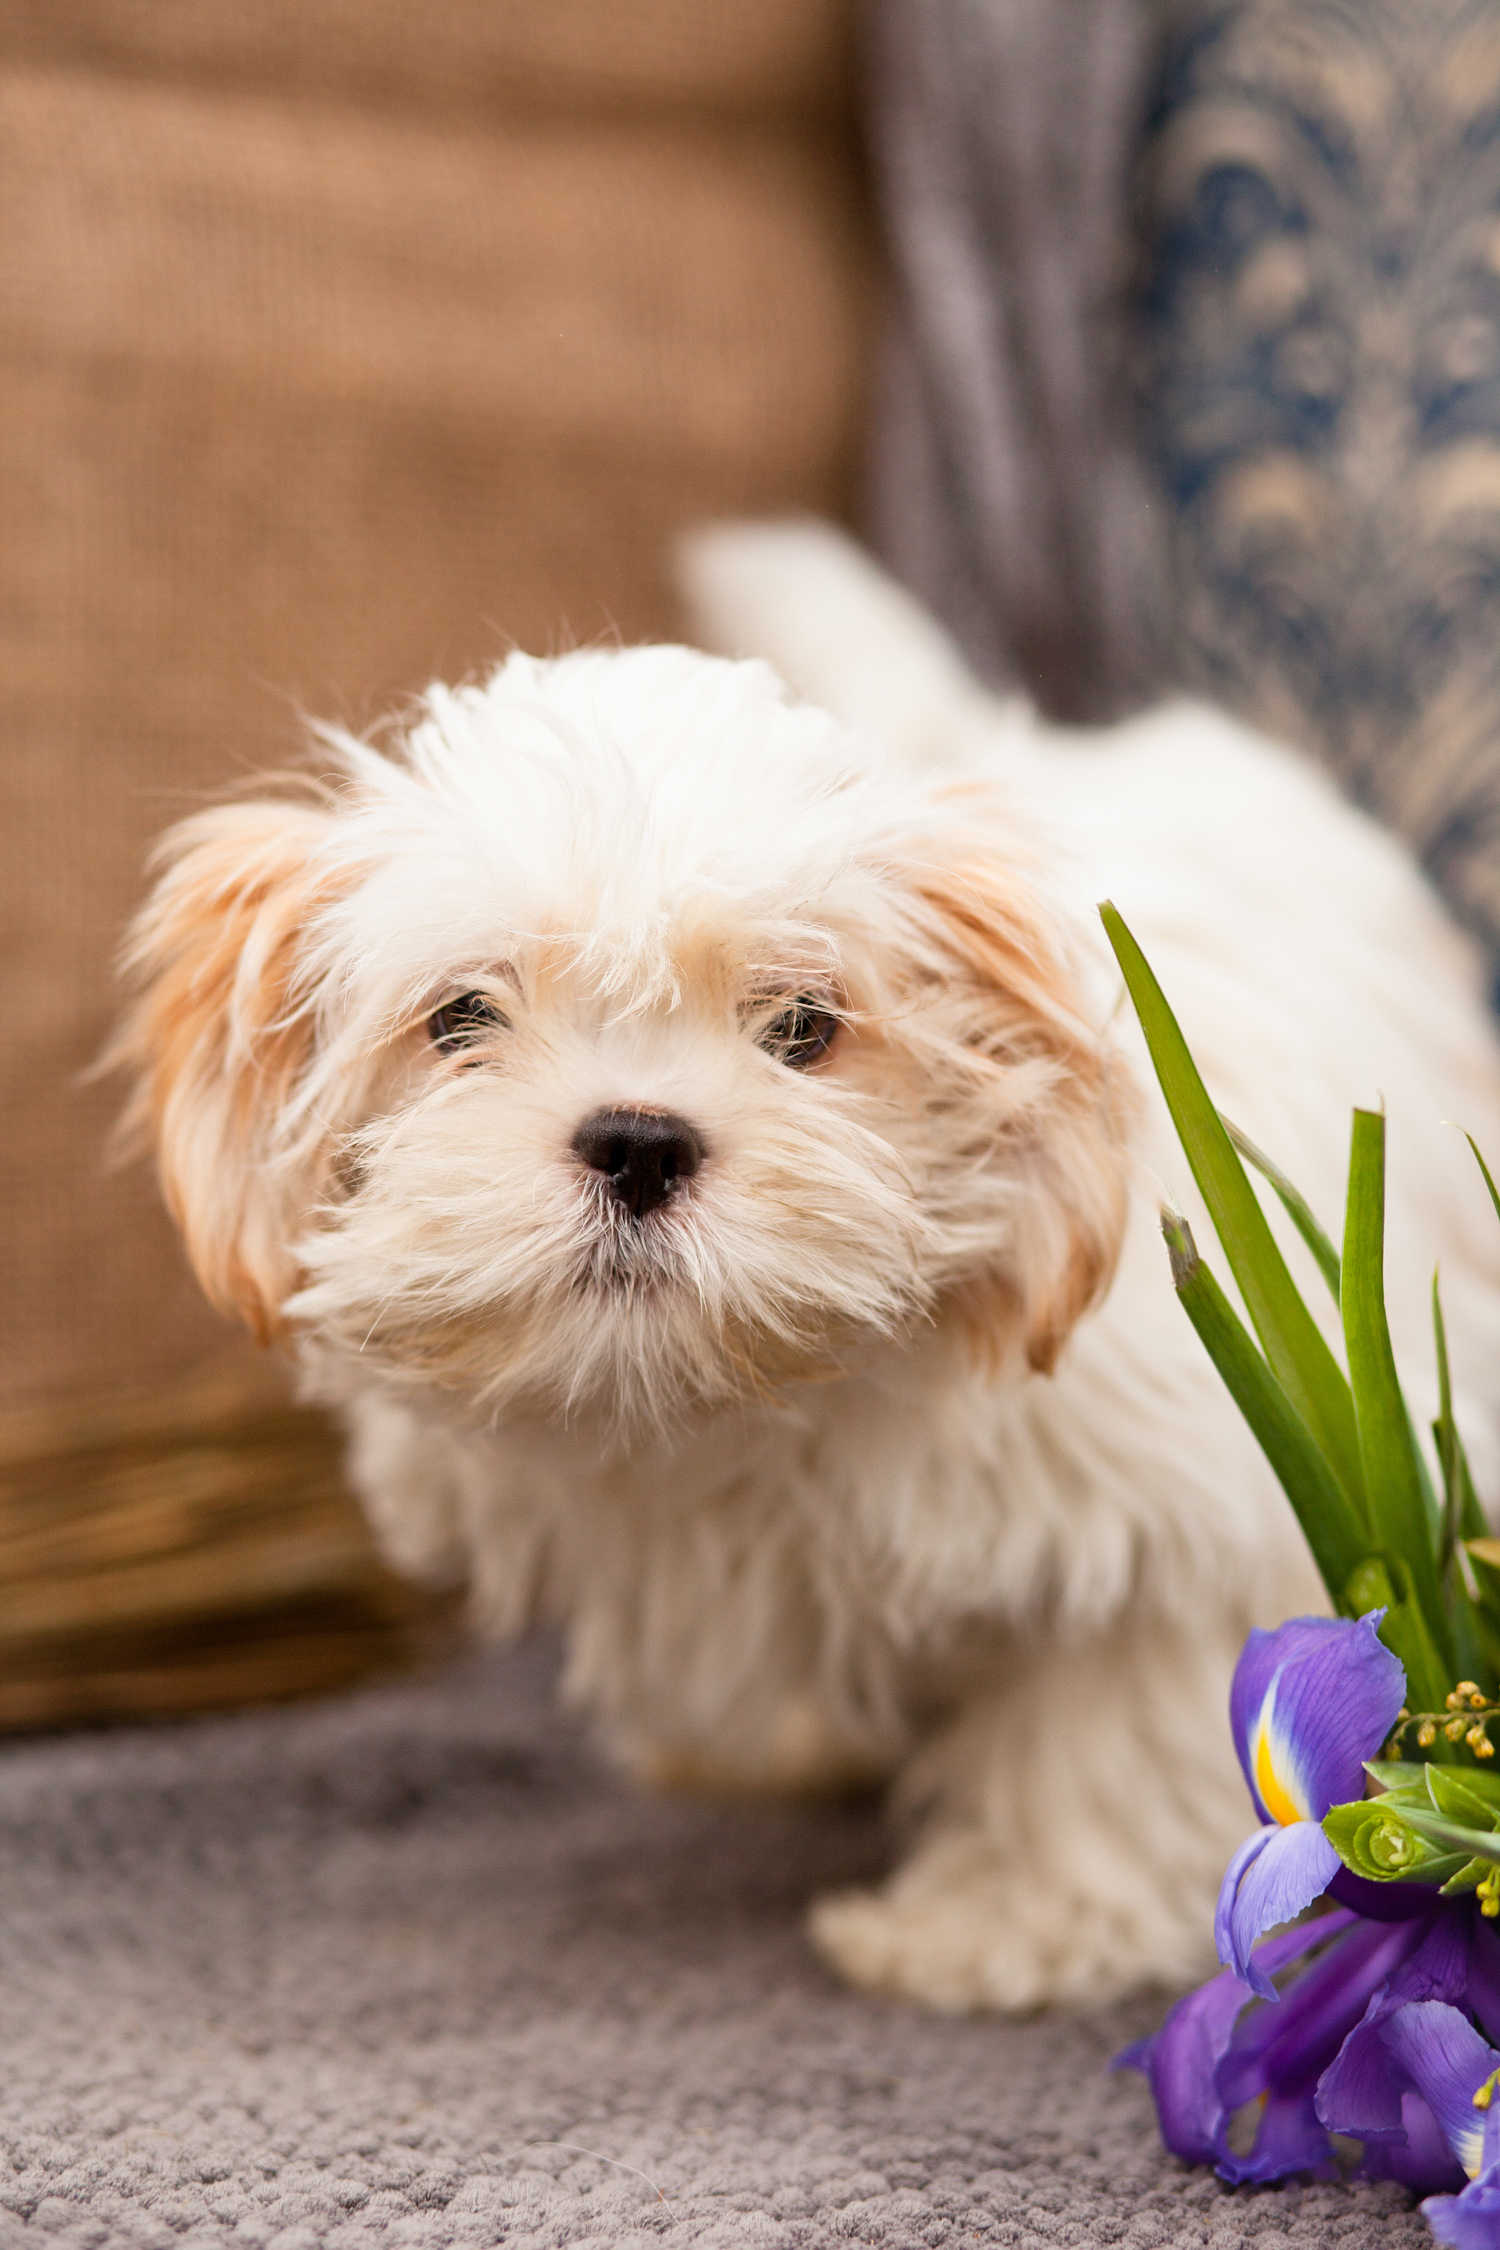 Dog Day Care Business For Sale Uk